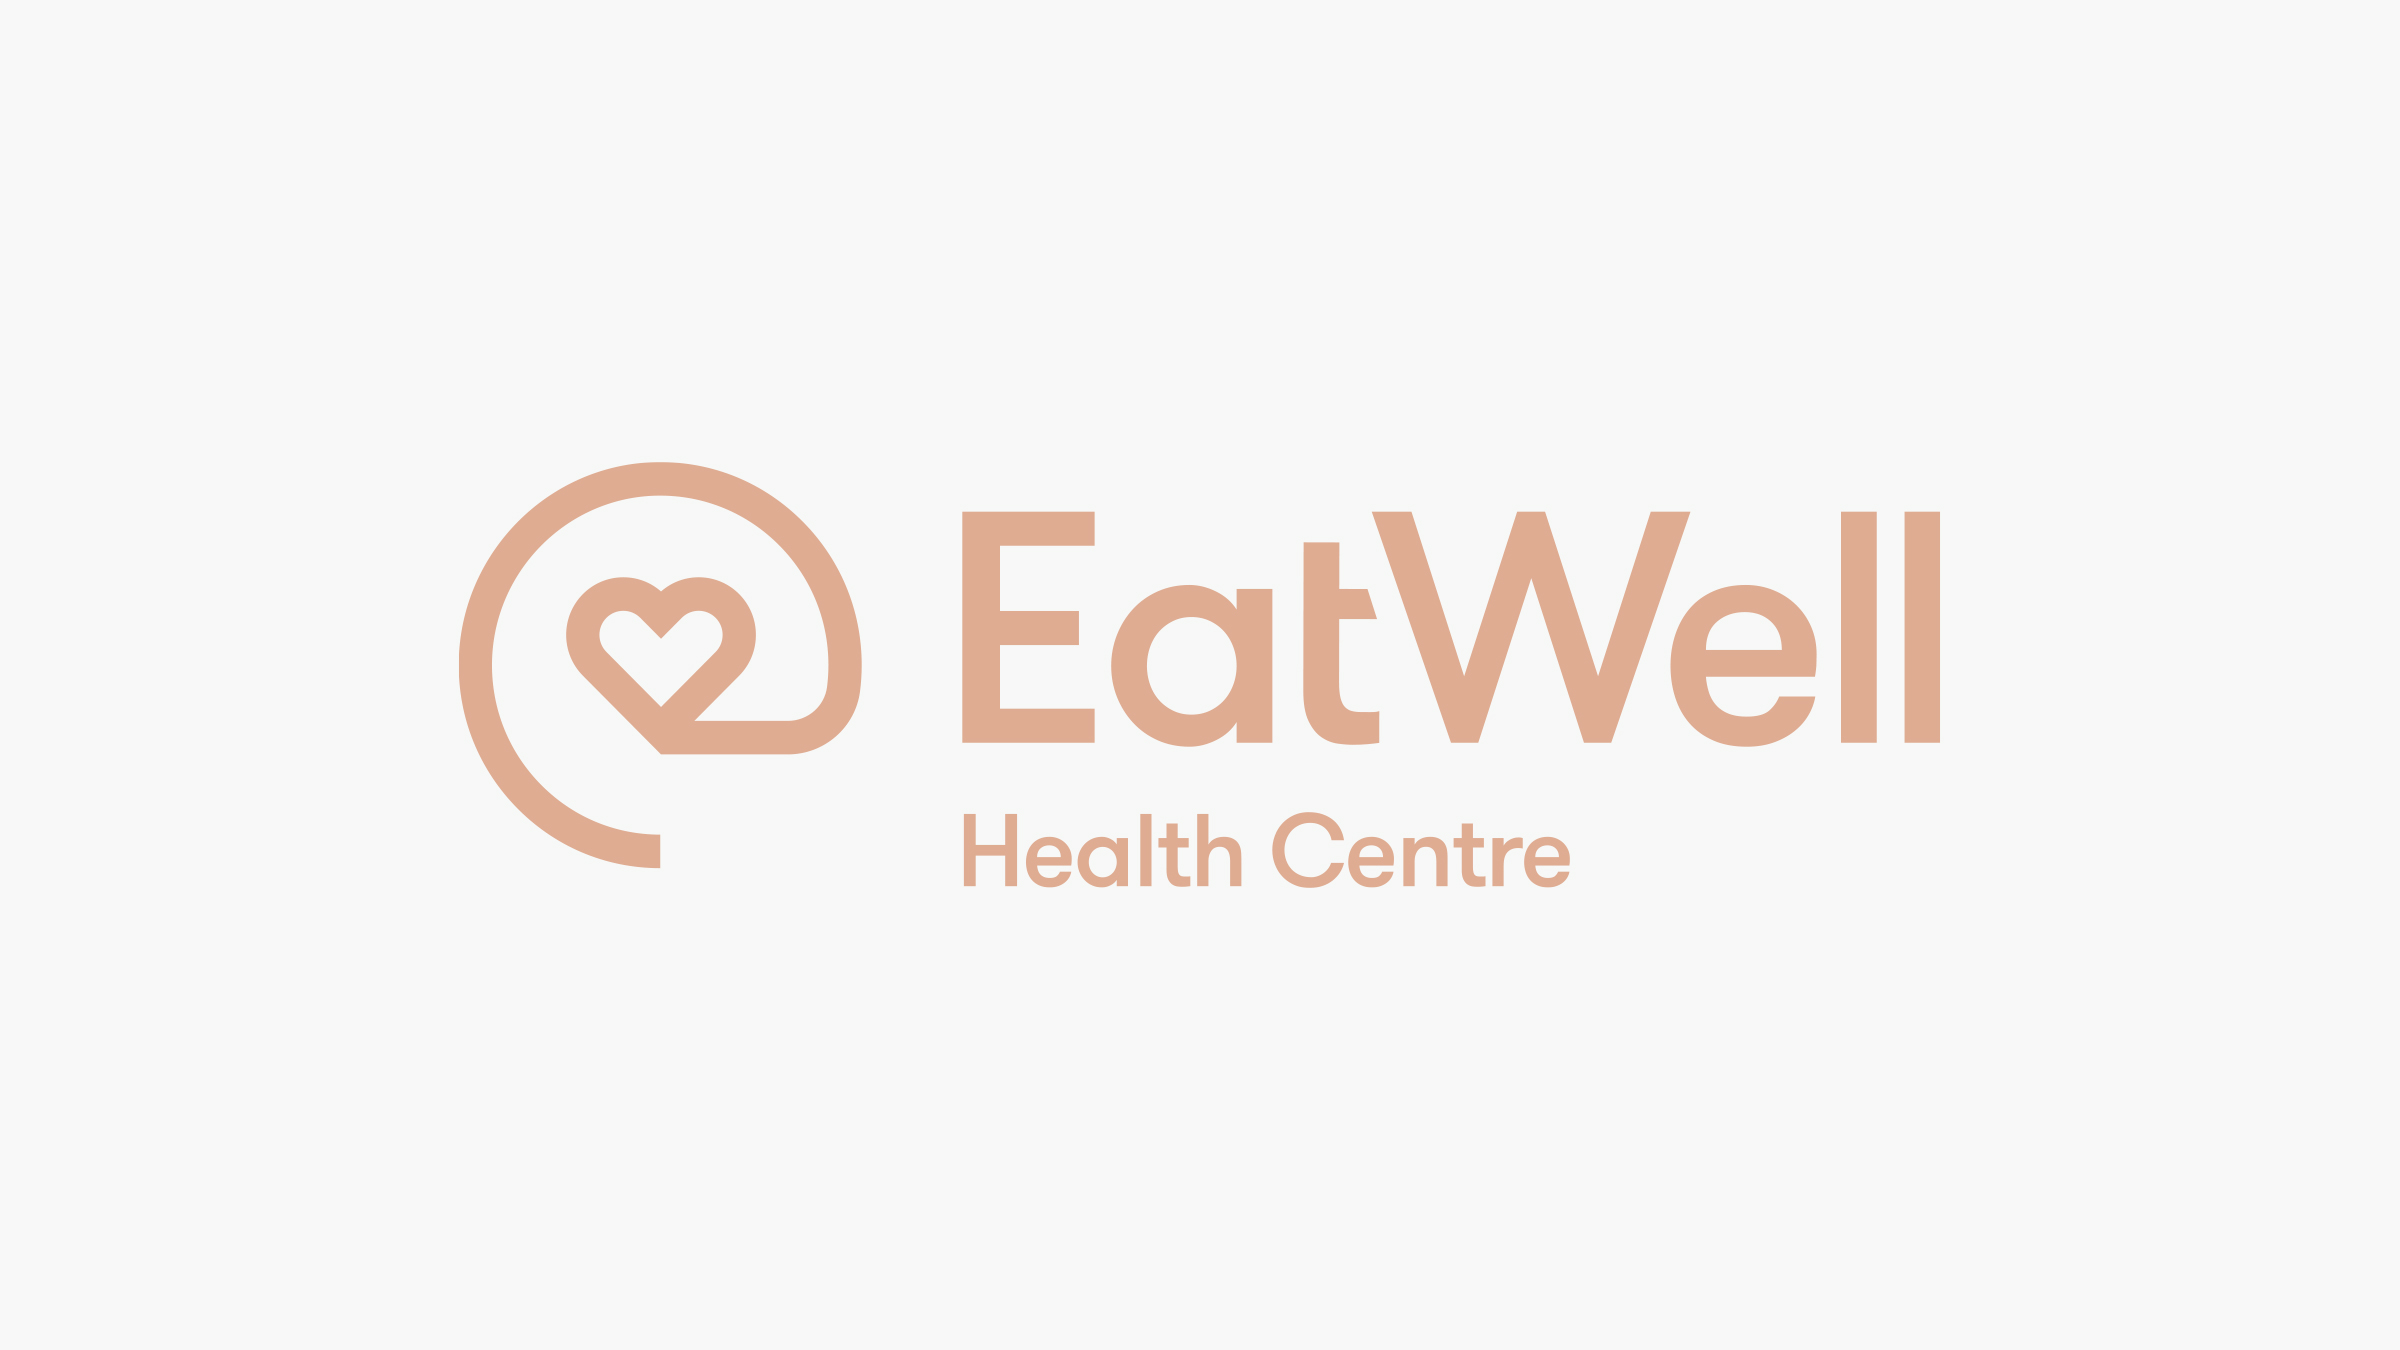 EatWell brand logo pink on cream